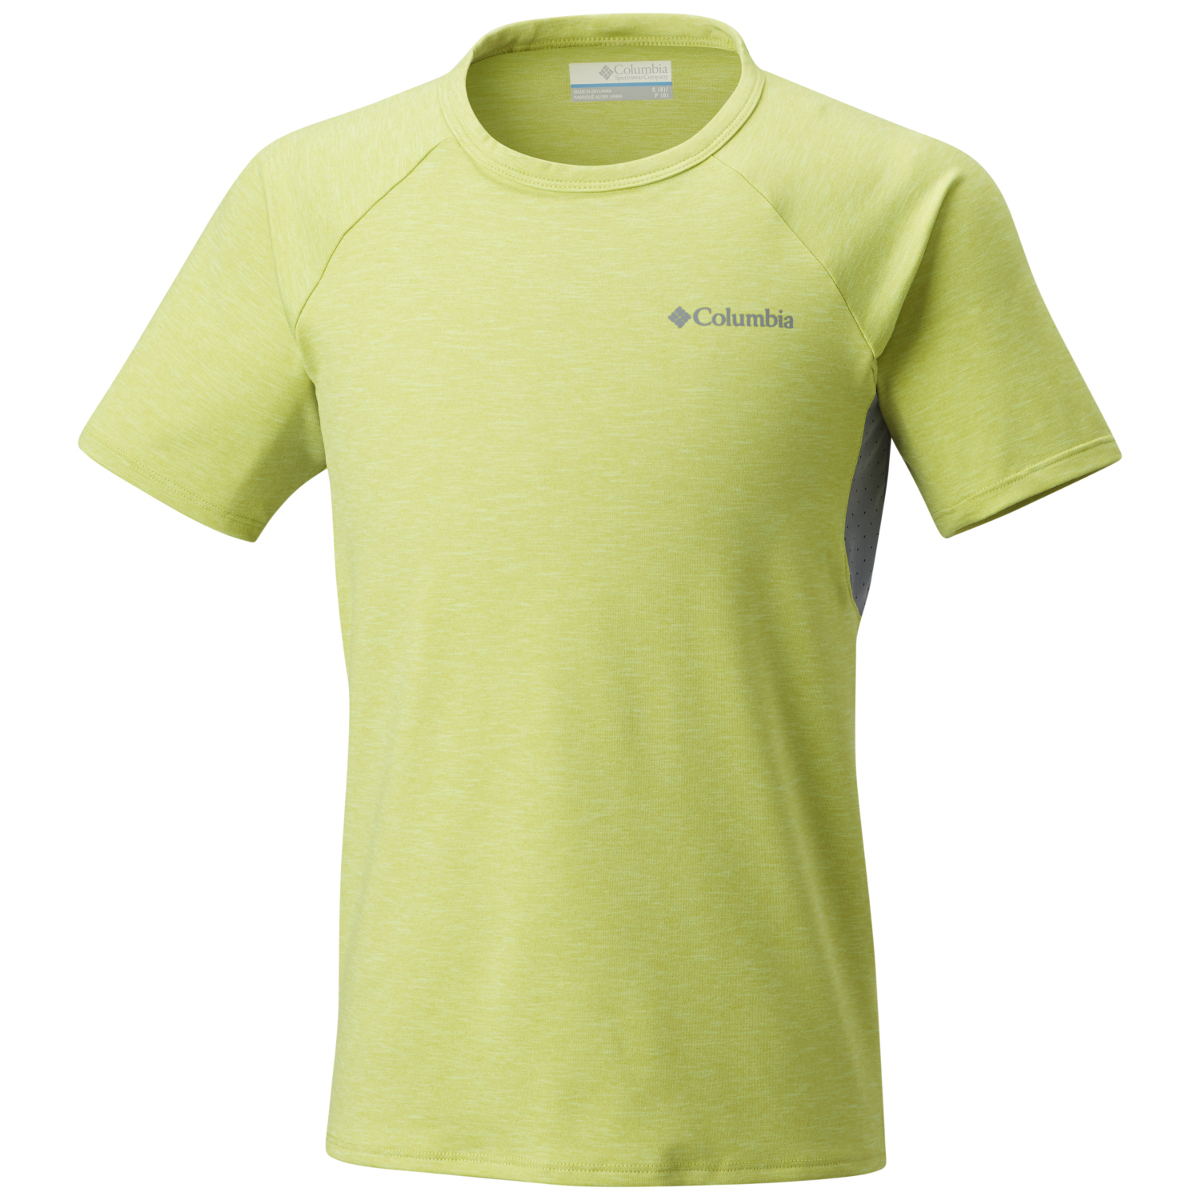 Columbia Big Boys' Silver Ridge Ii Short-Sleeve Tee - Green, L